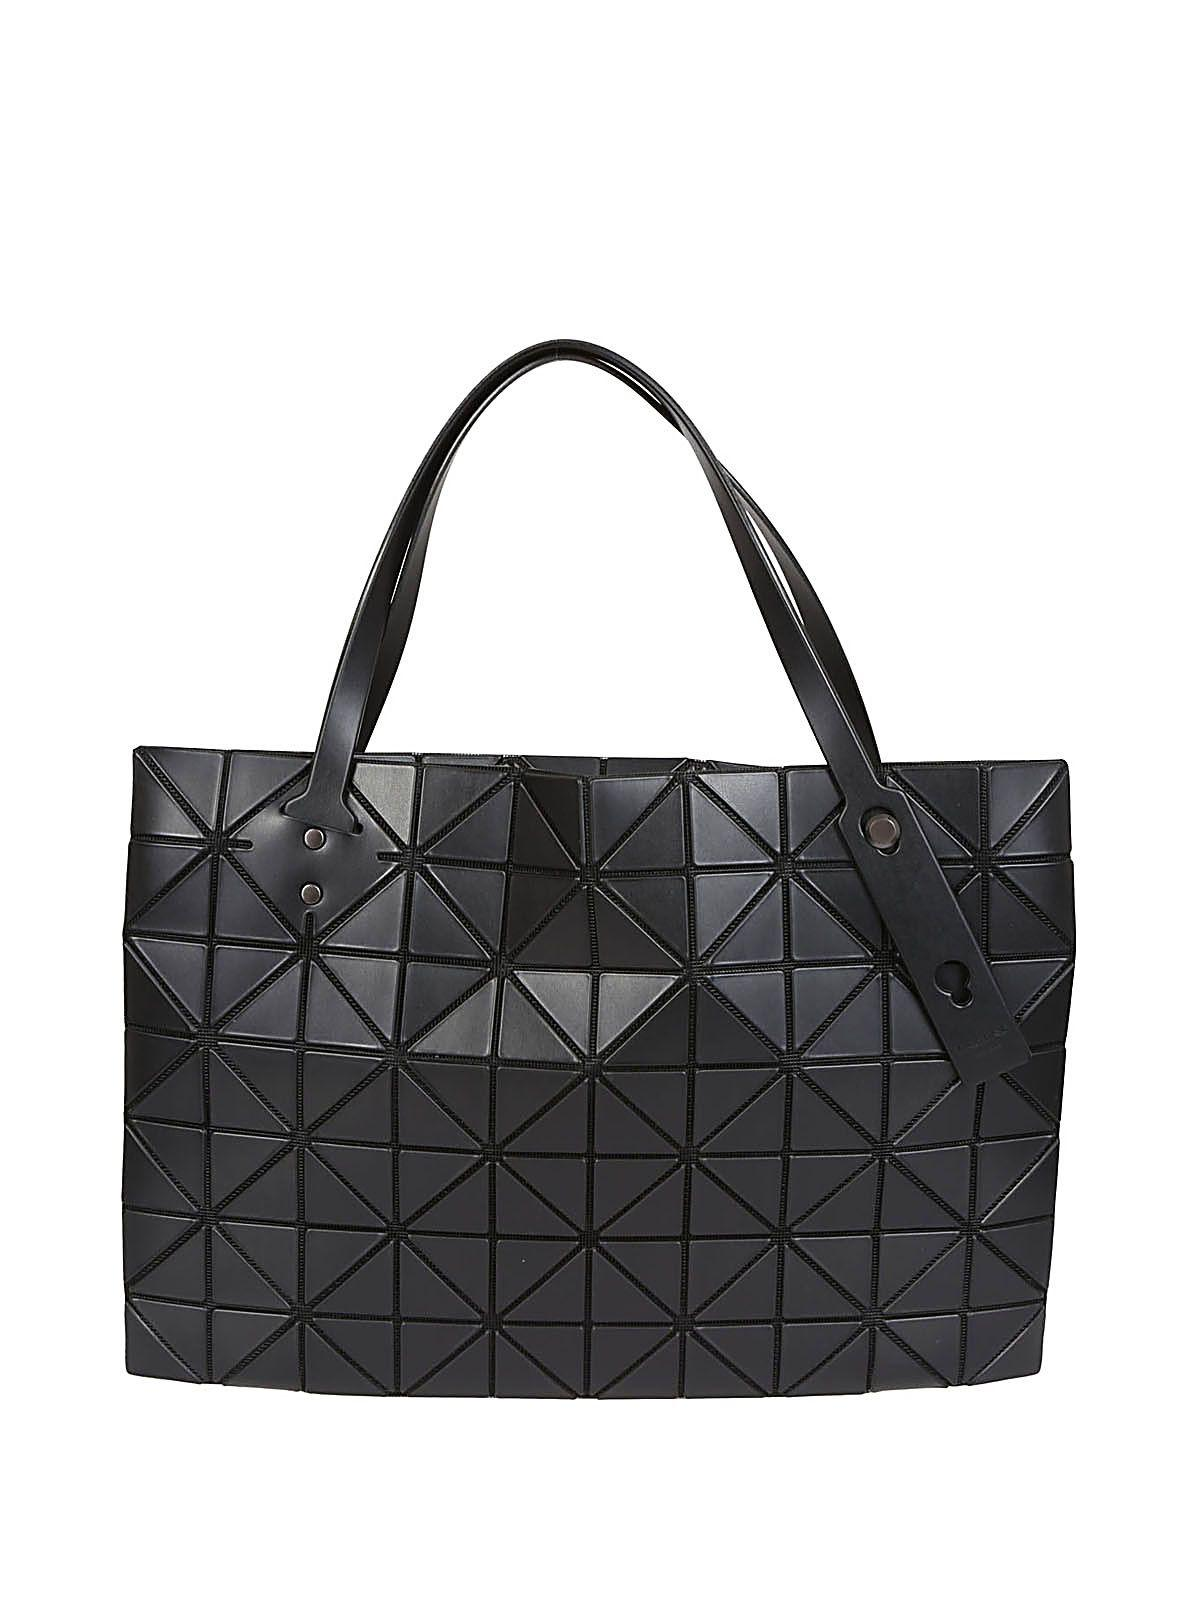 Bao Bao Issey Miyake Lucent Tote In Black